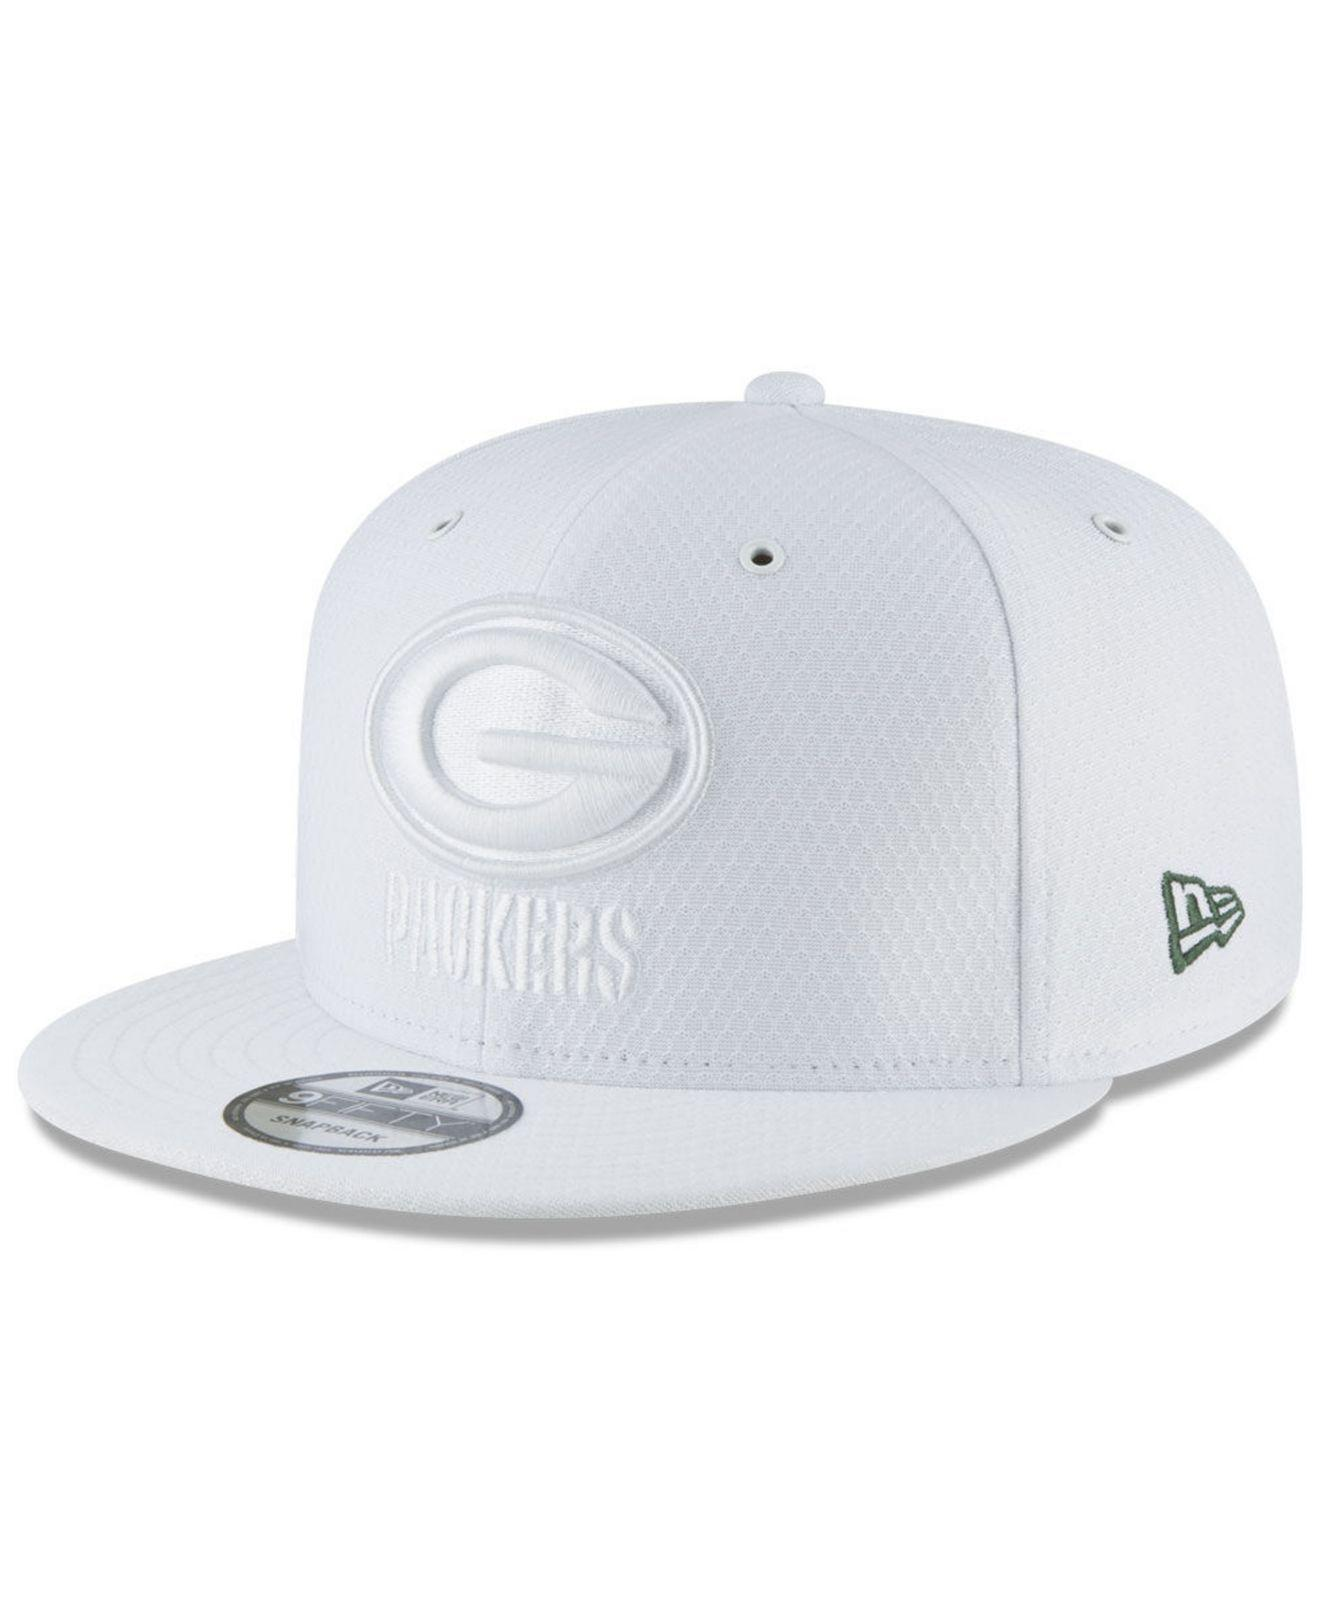 0cc9f675a Lyst - KTZ Green Bay Packers On Field Color Rush 9fifty Snapback Cap ...